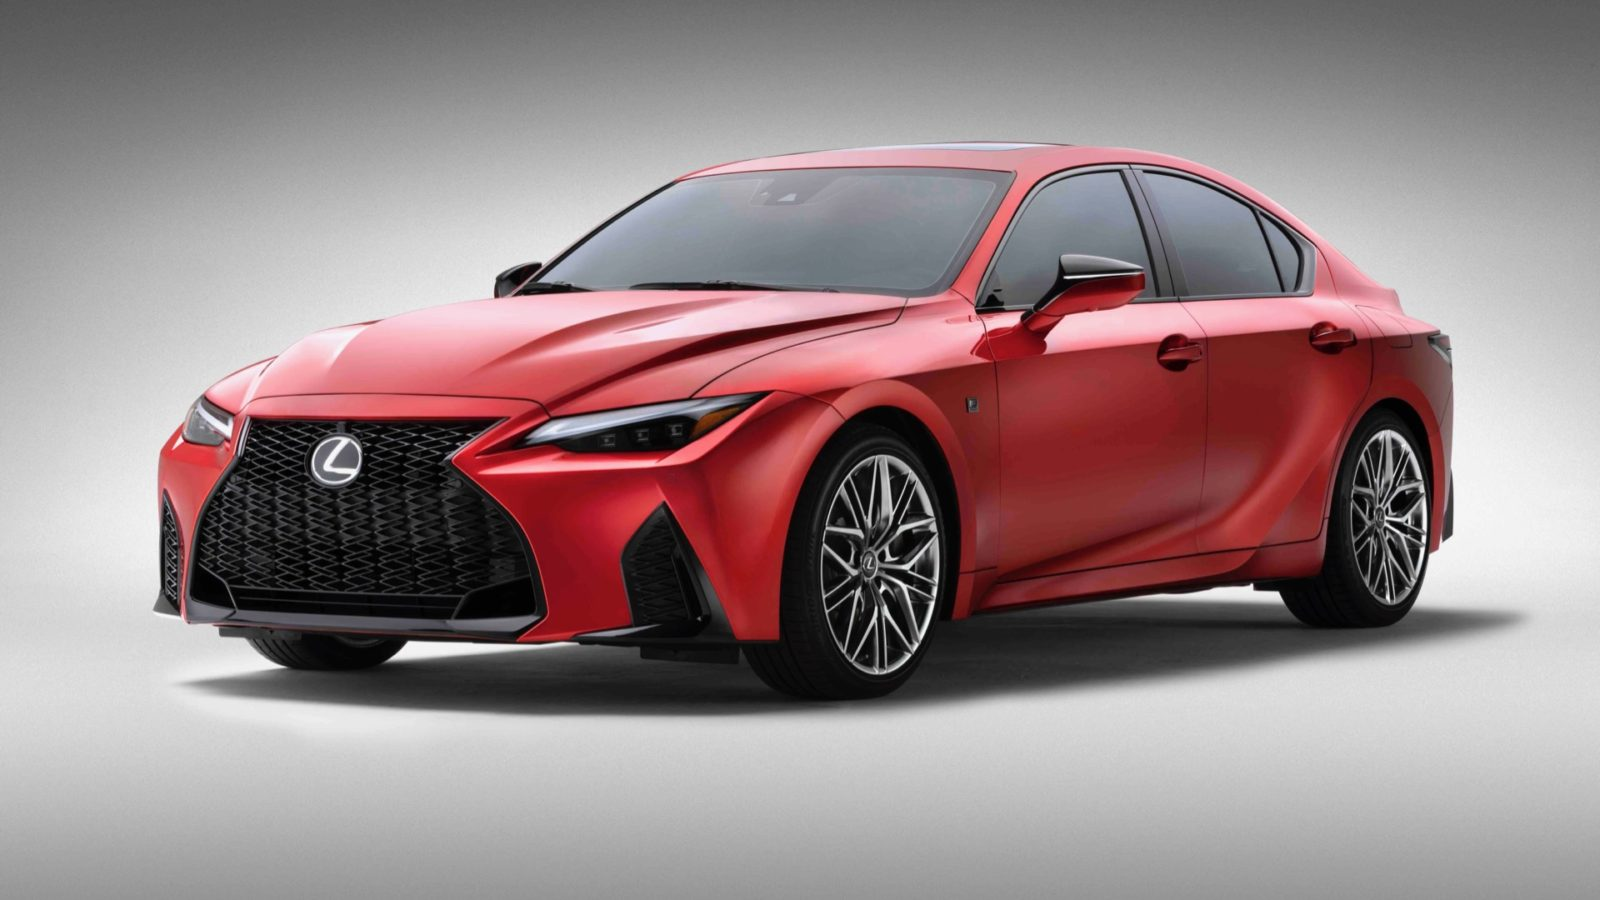 first-drive-review:-2022-lexus-is-500-f-sport-performance-leans-on-power-for-a-good-time